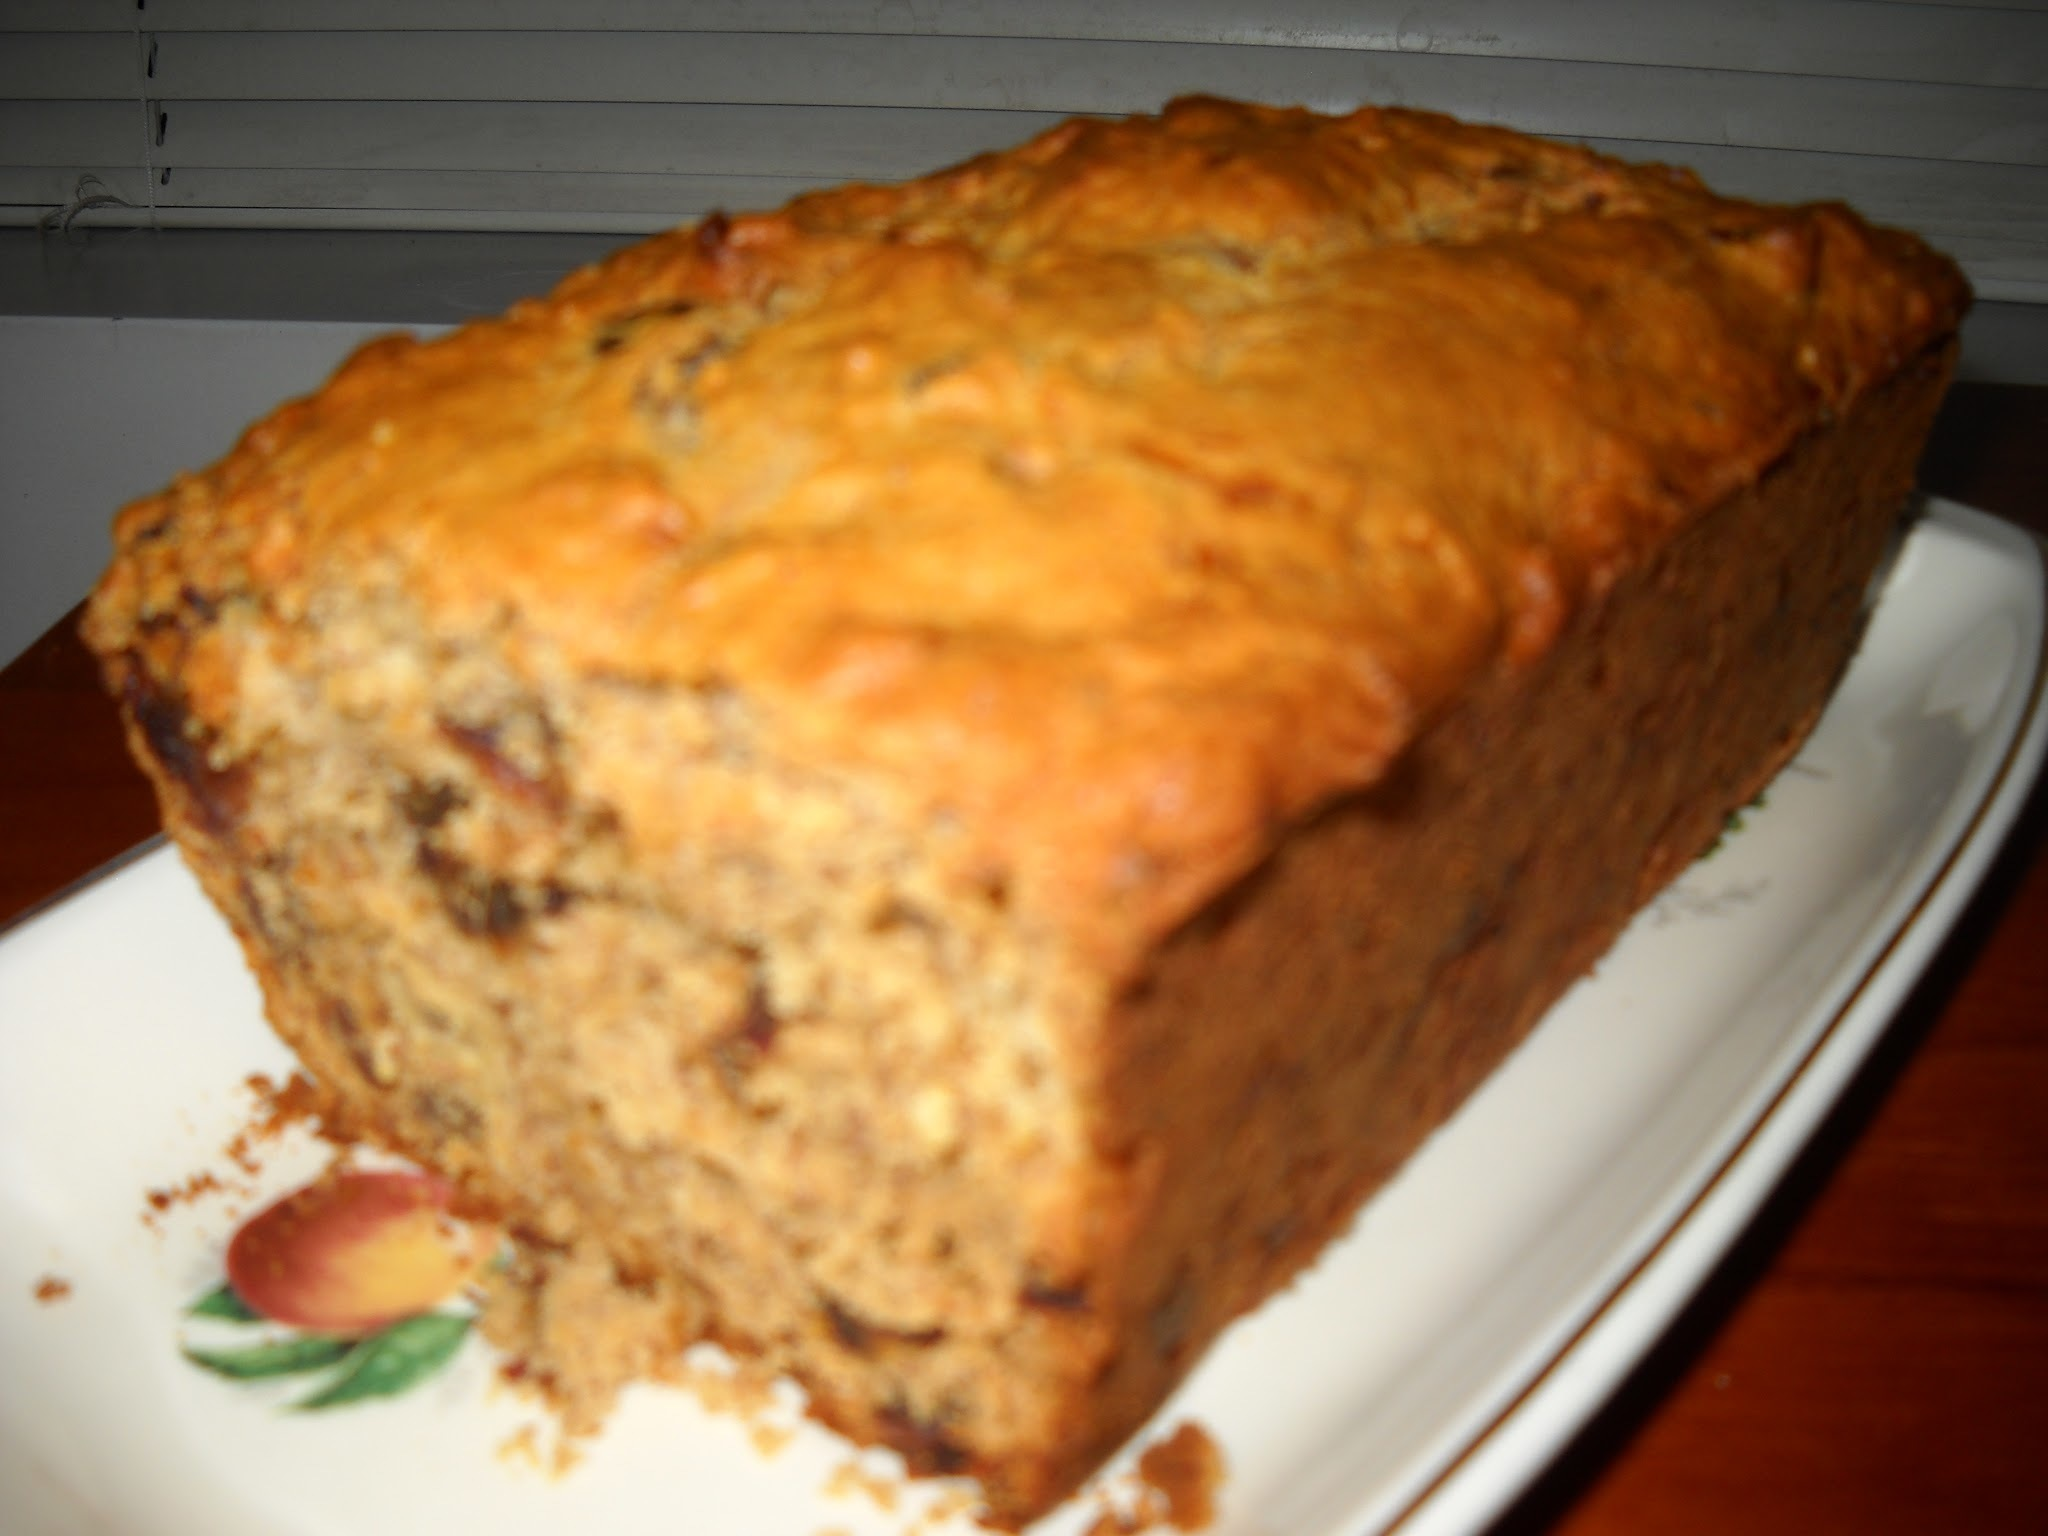 Banana, Date, Apricot and Pecan Tea Bread